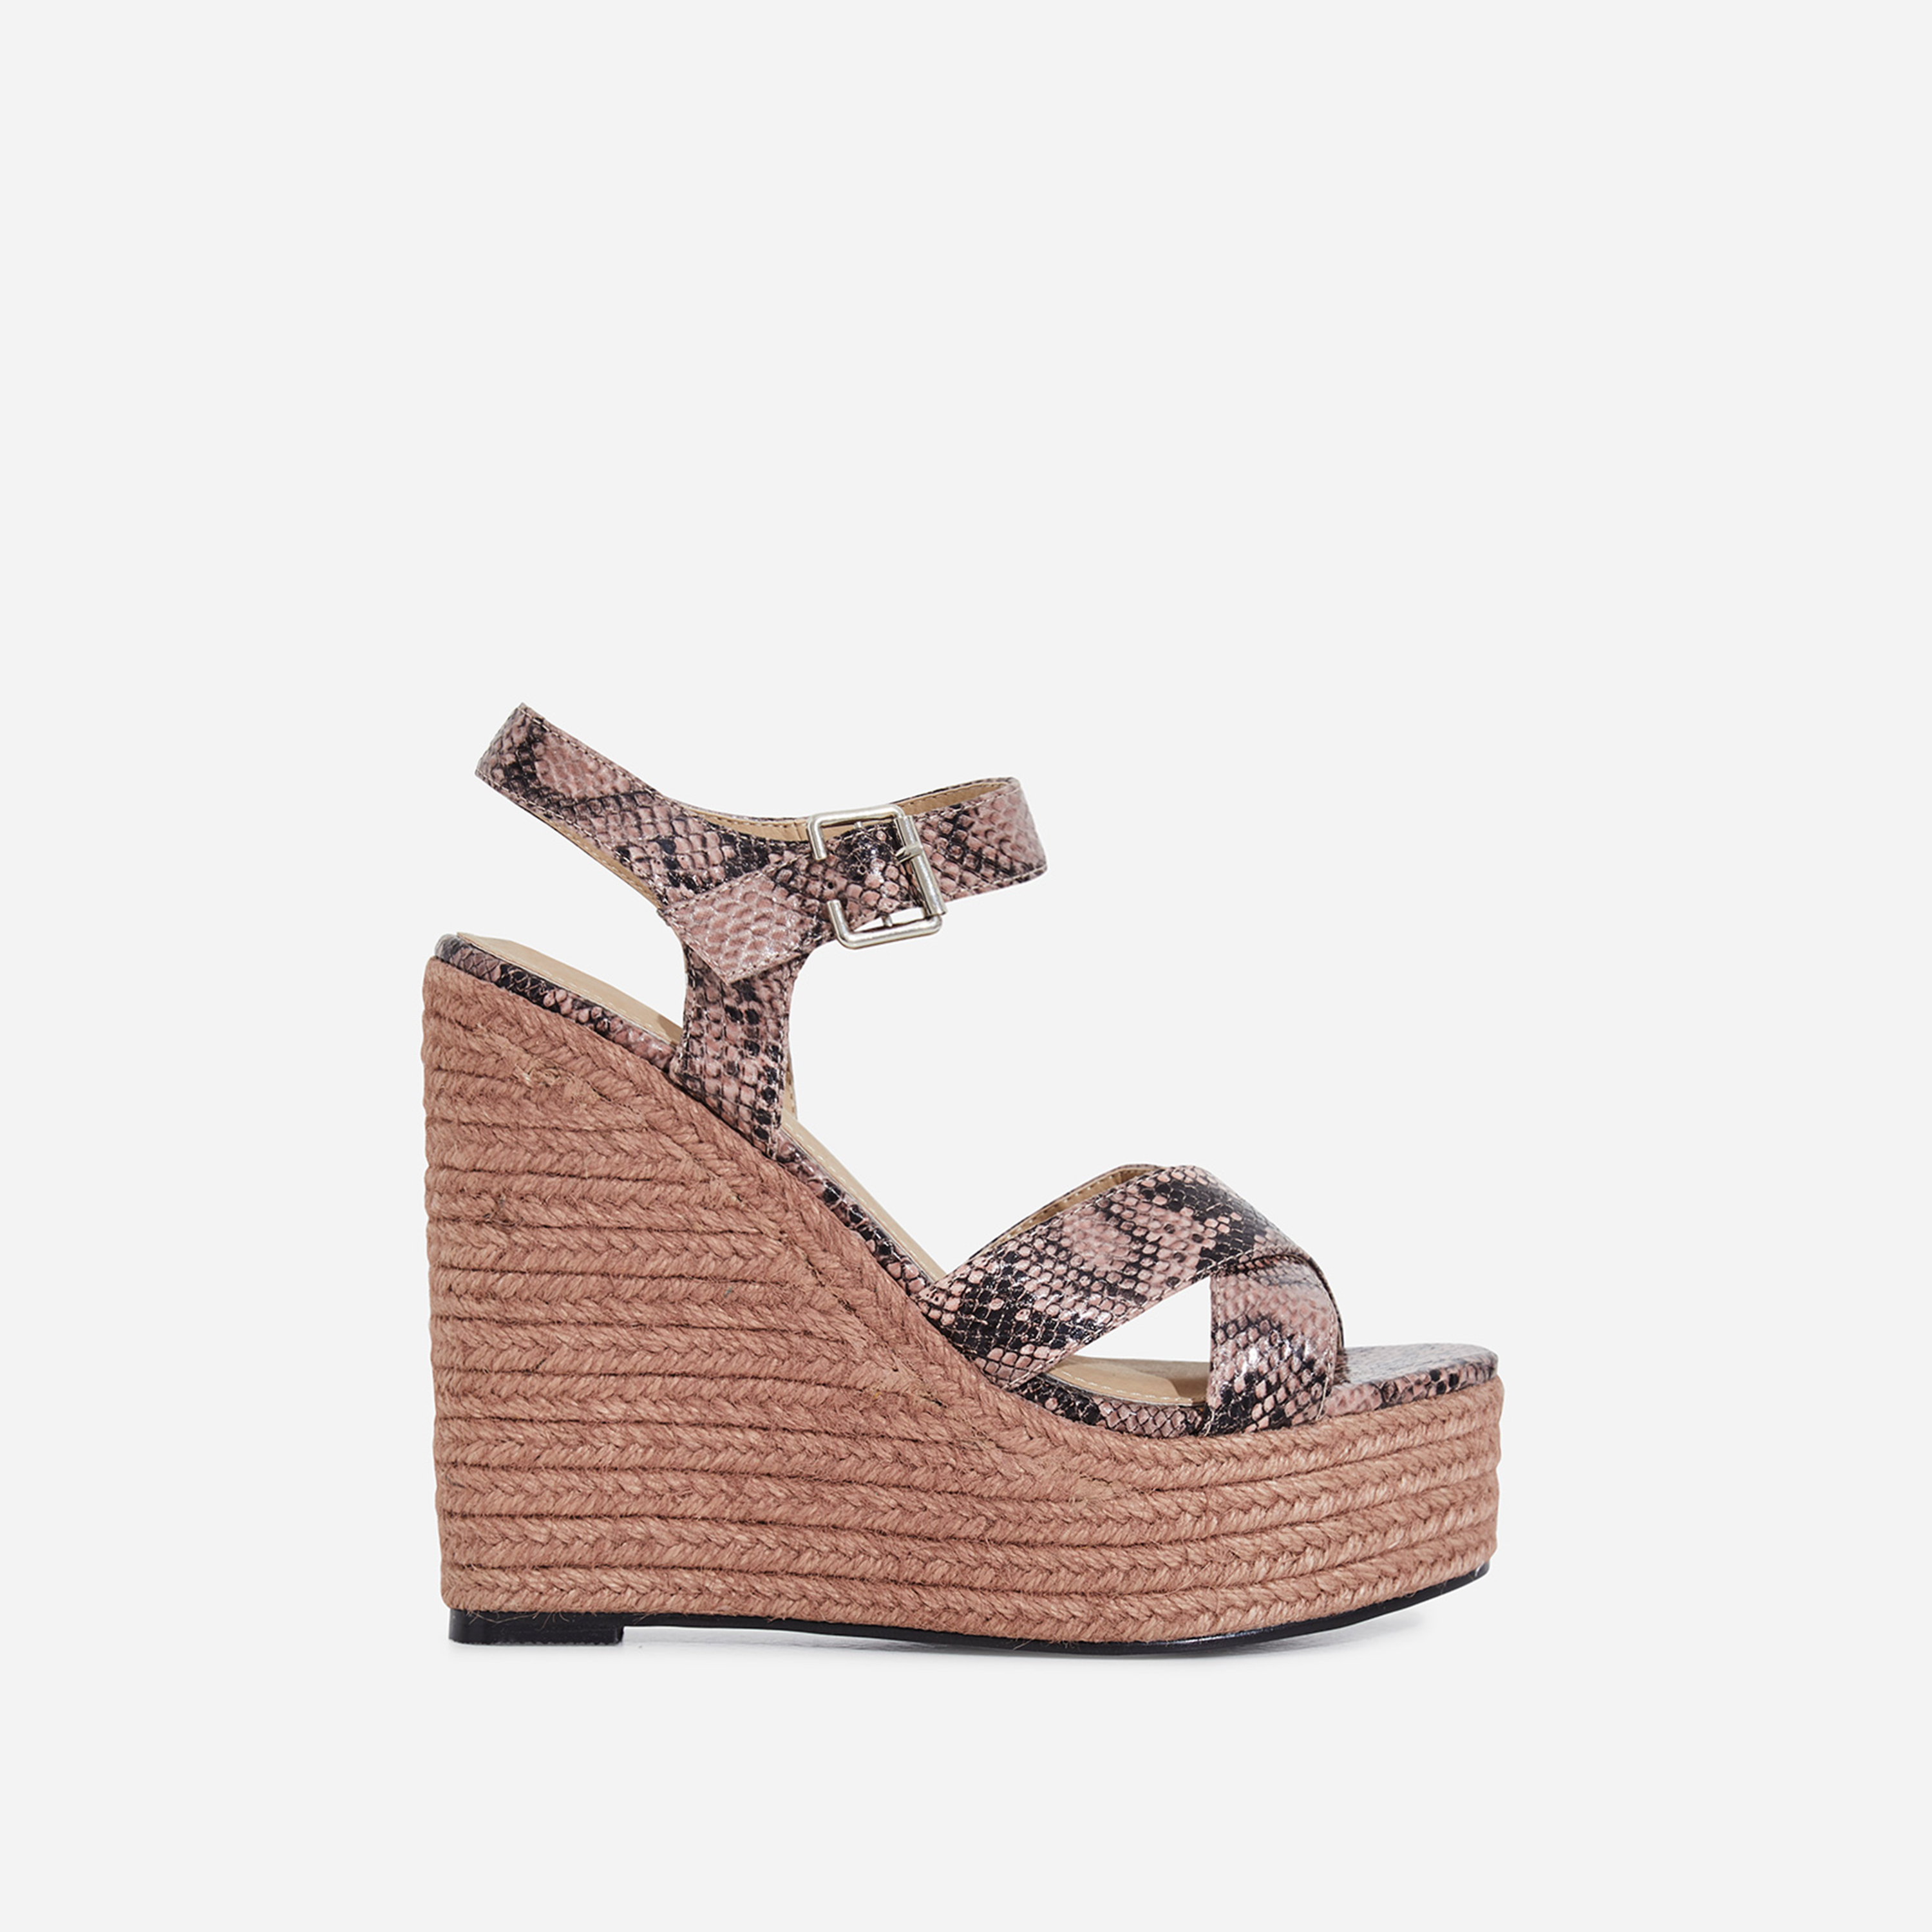 3f18b5a369d Kadi Espadrille Wedge Platform Heel In Pink Snake Faux Leather